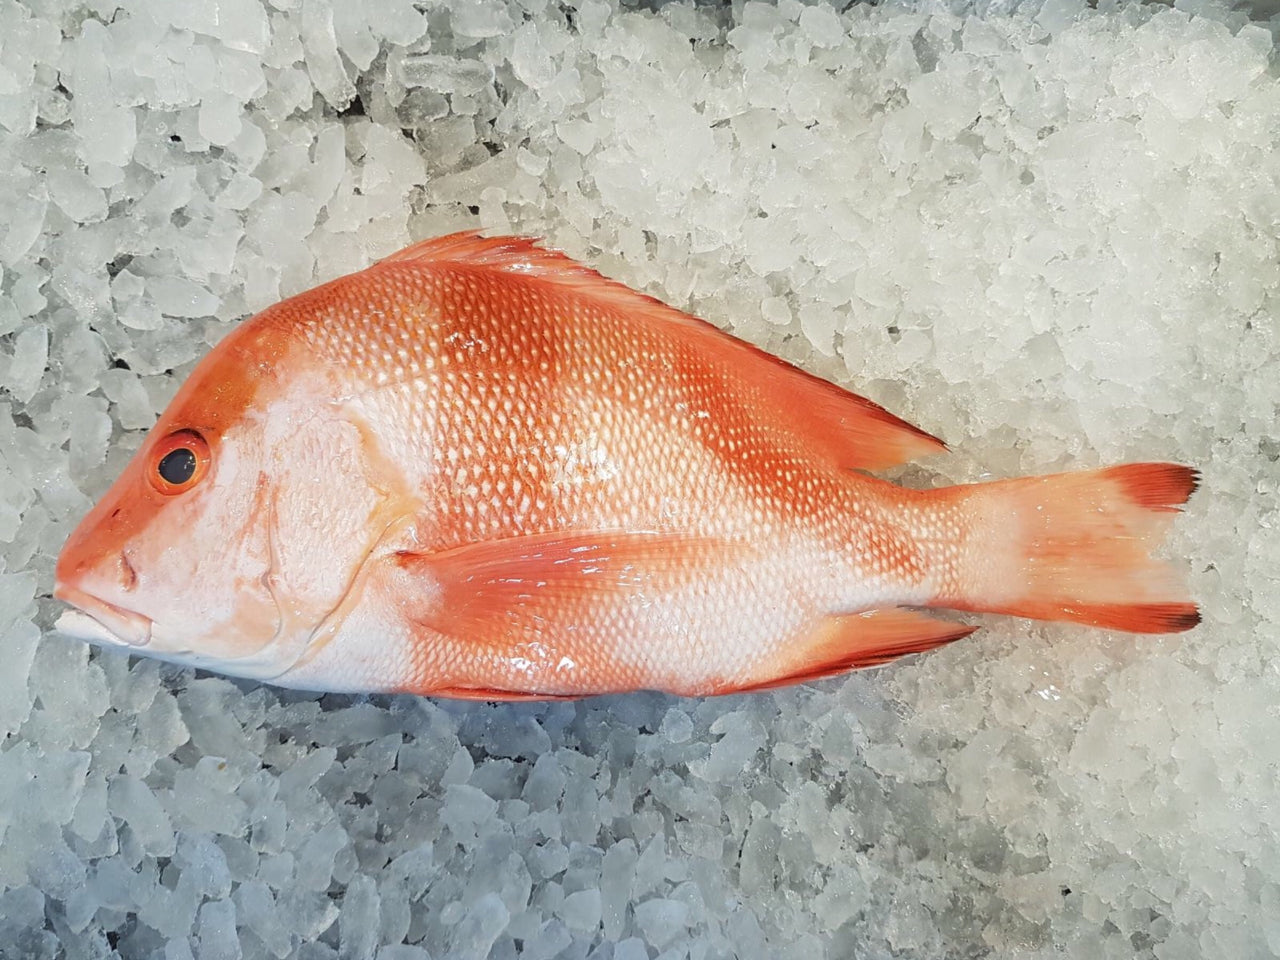 wild caught Red Emperor Snapper ang sai 红狮子 Singapore Fresh Fish Third Generation Fishmonger dishthefish fresh seafood supplier singapore